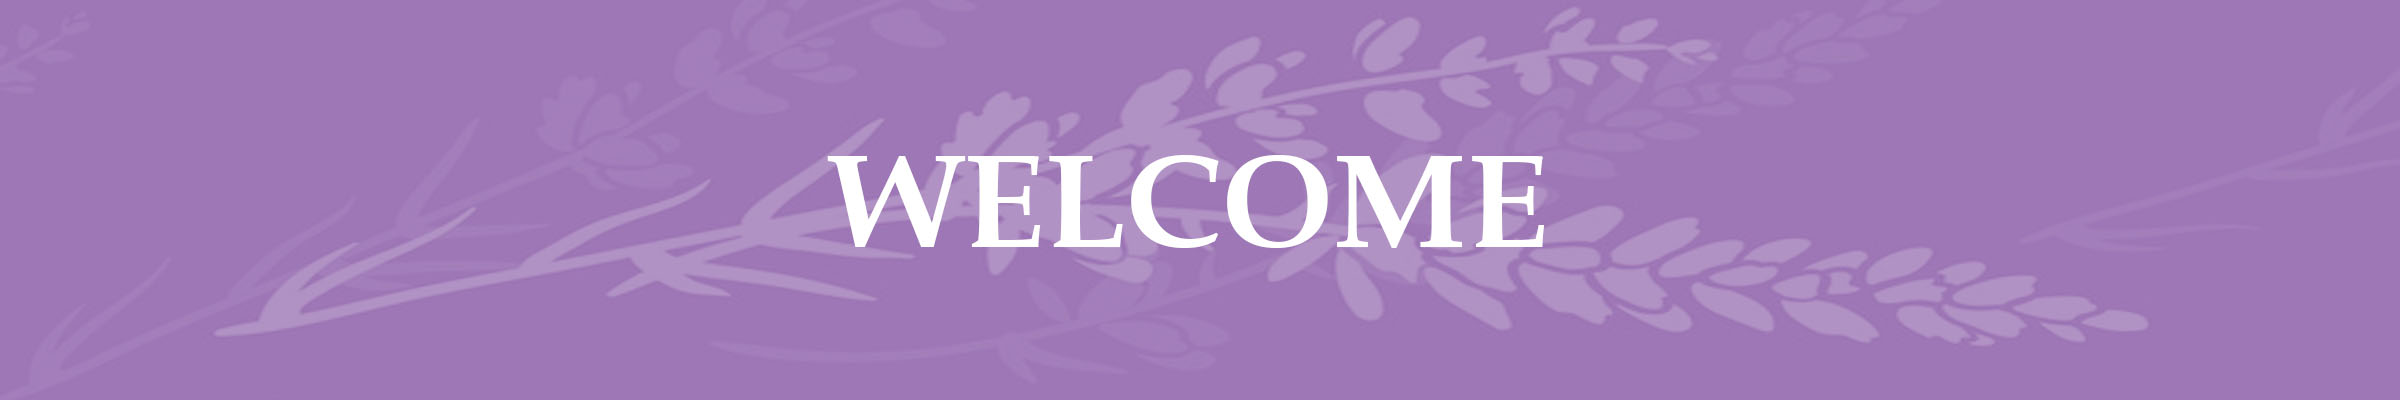 Lavender Page Header Welcome